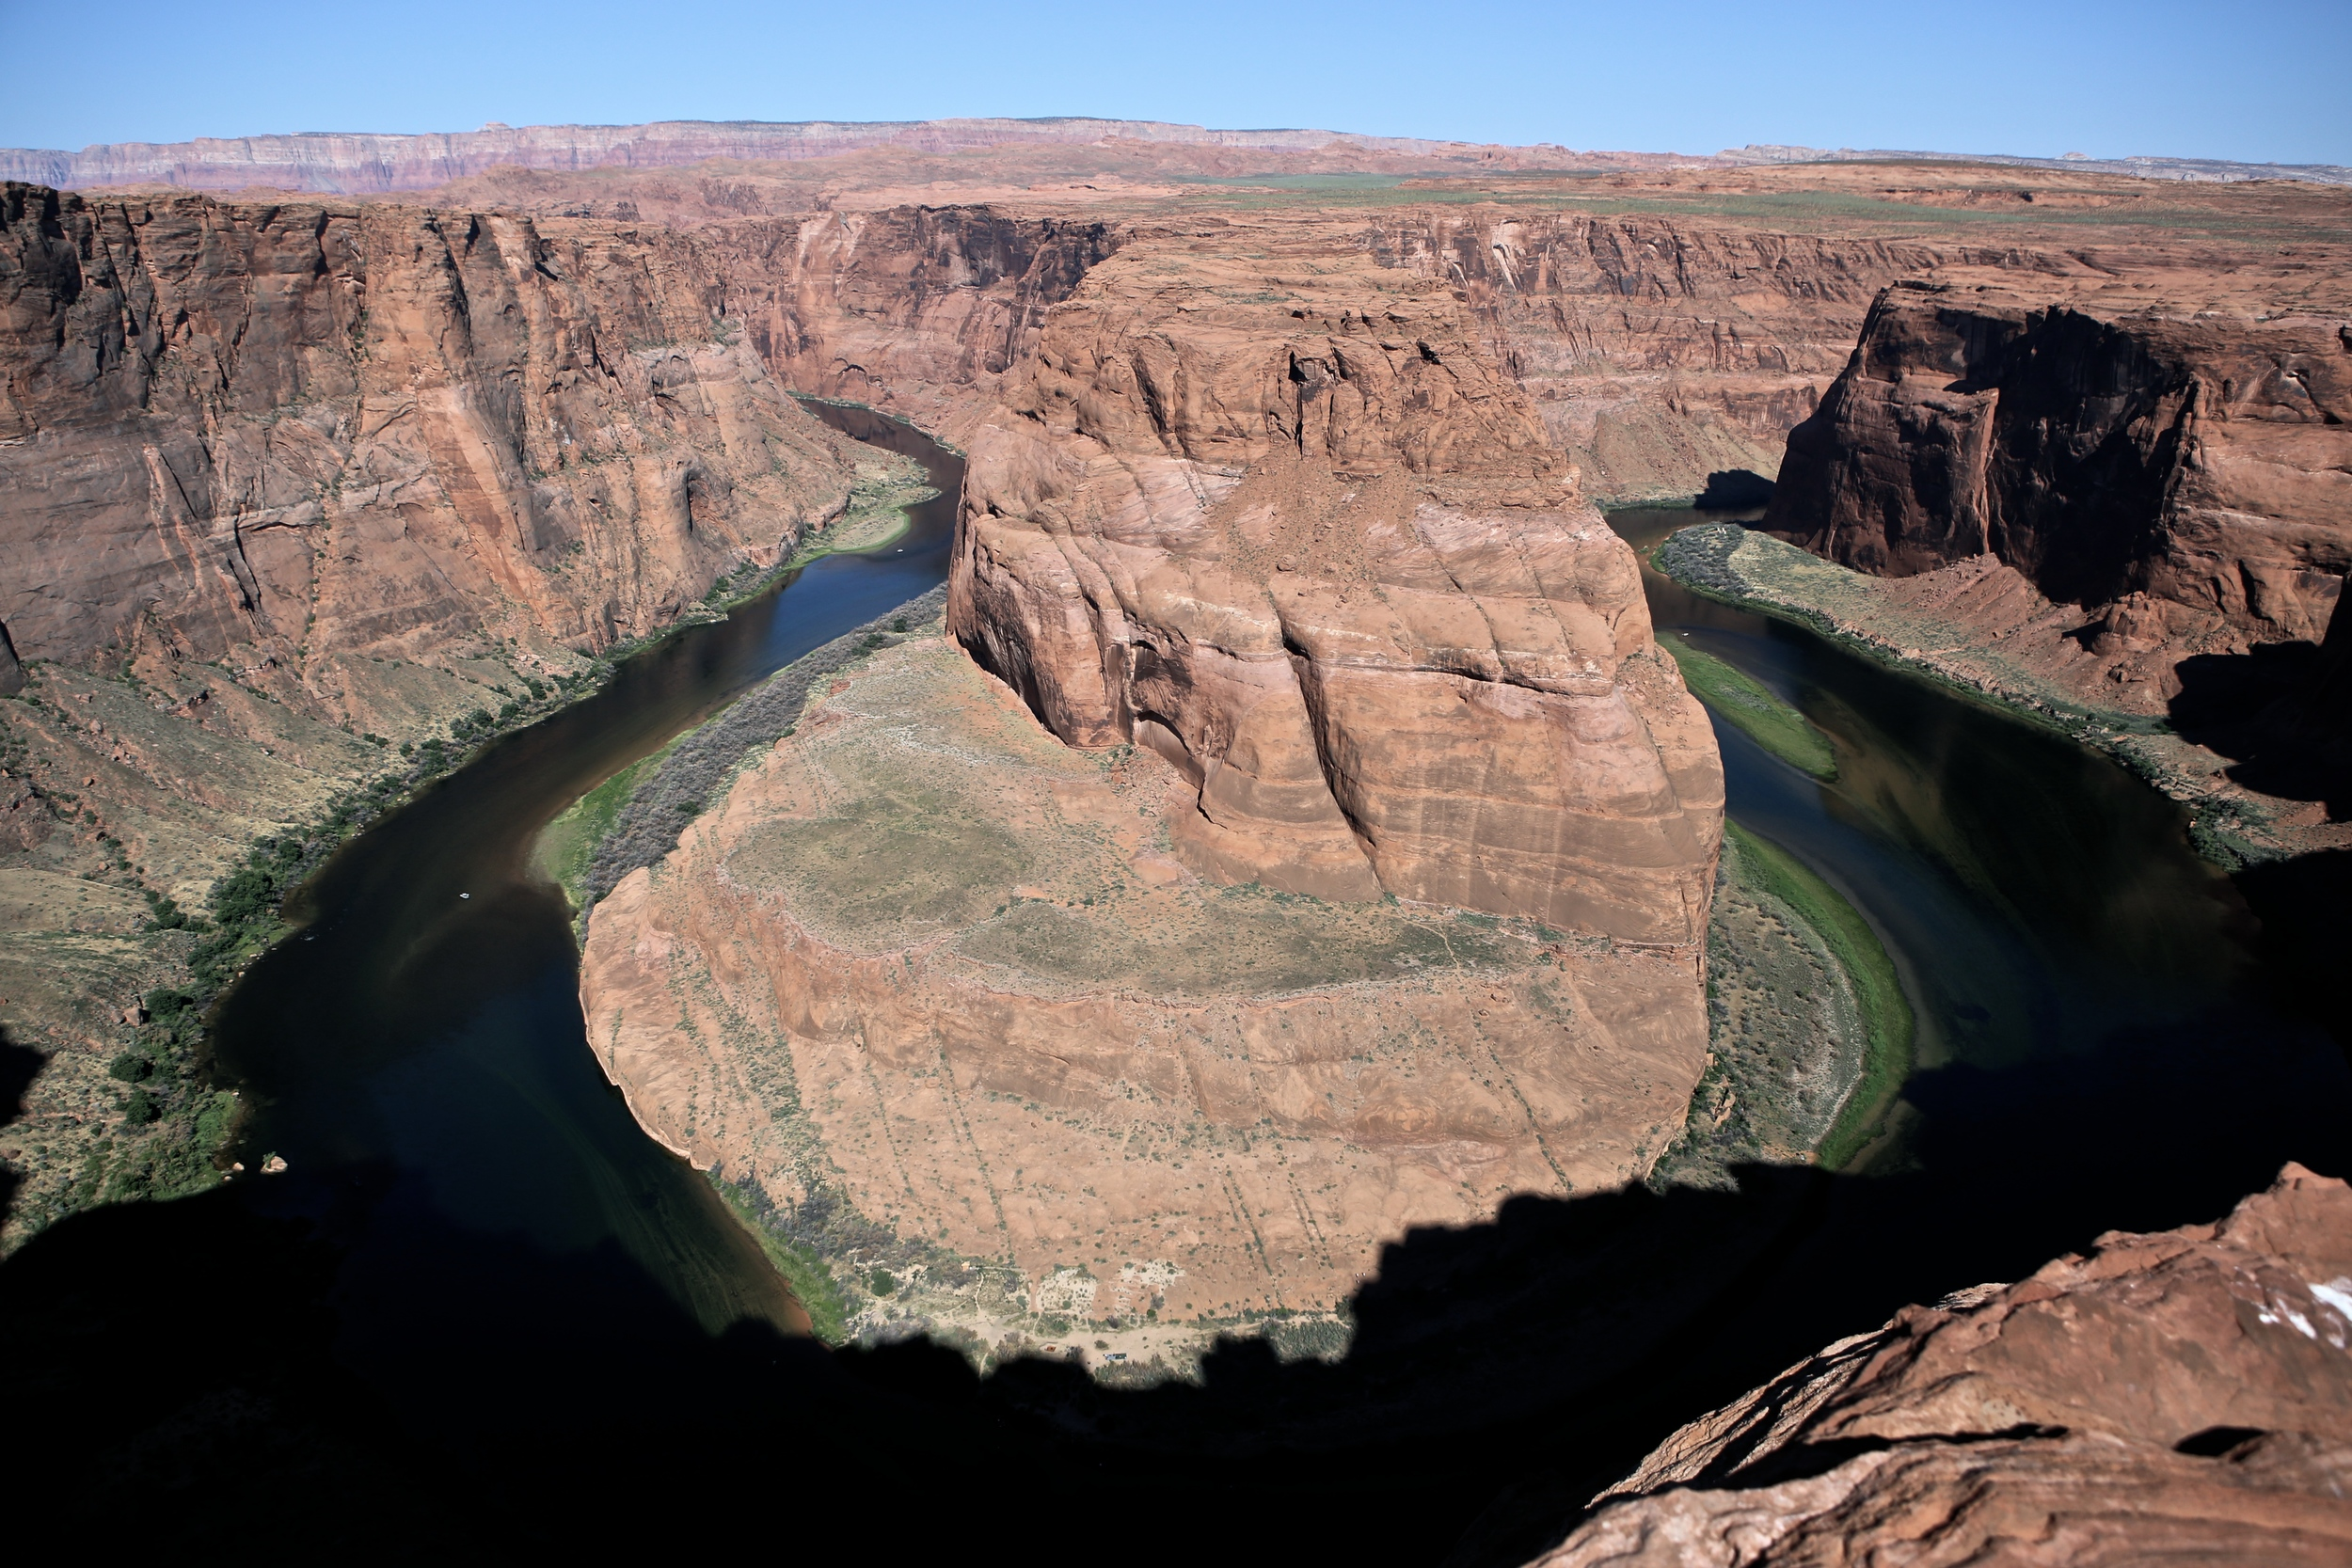 Stopped by Horseshoe Bend afterwards spur the moment which was definitely worth the slight detour